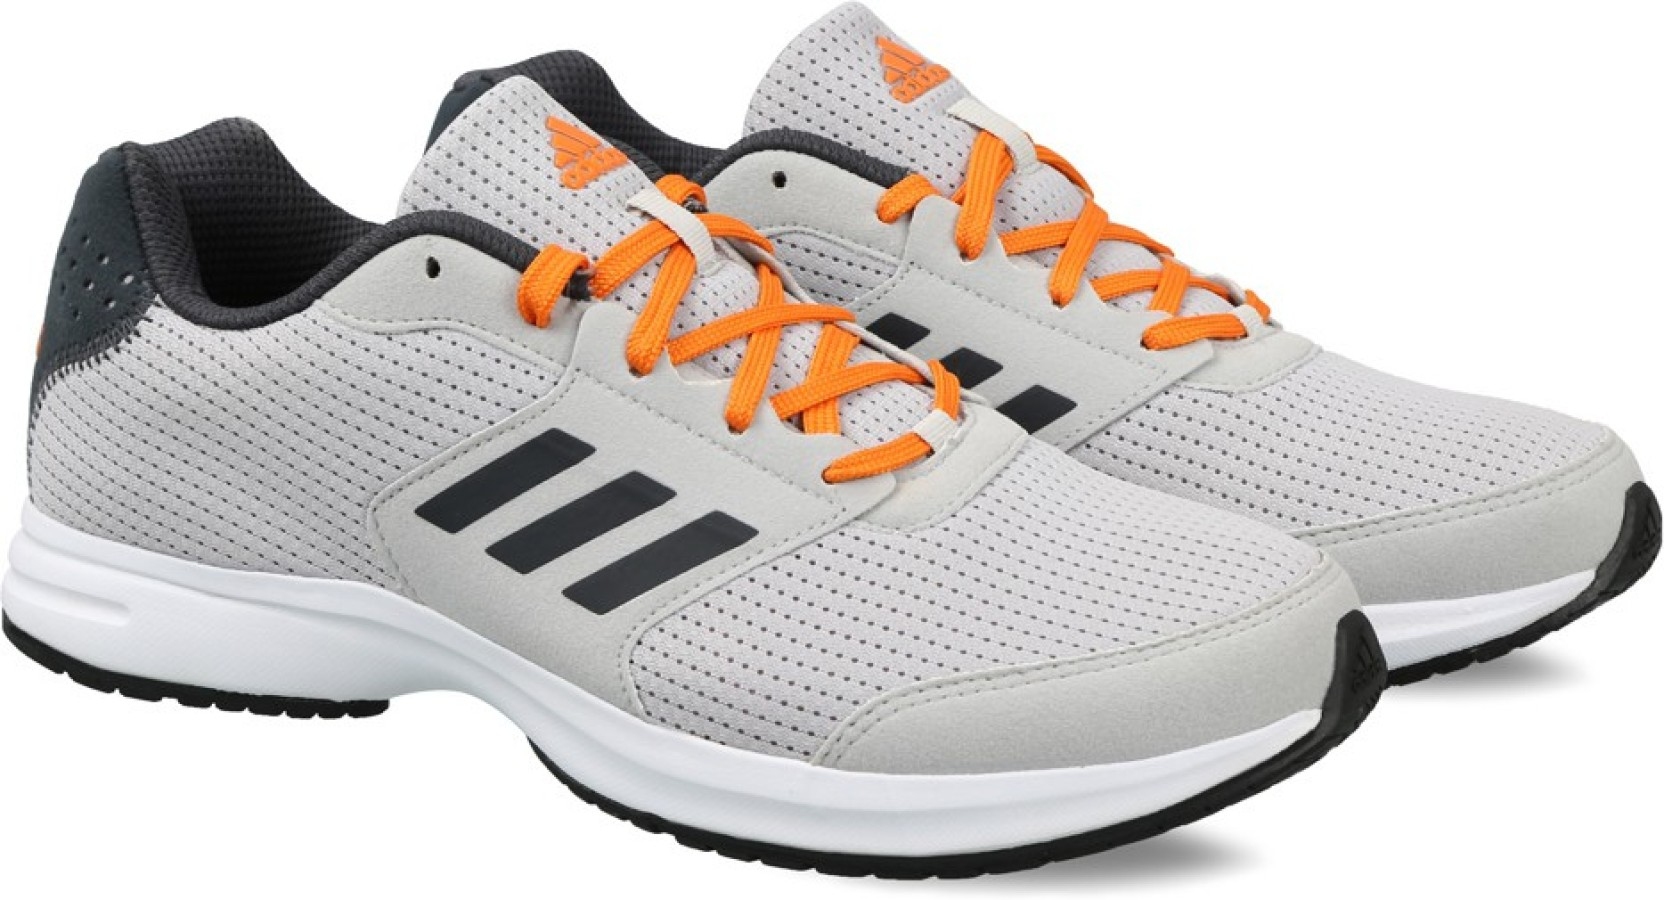 Adidas Shoe Online Offer